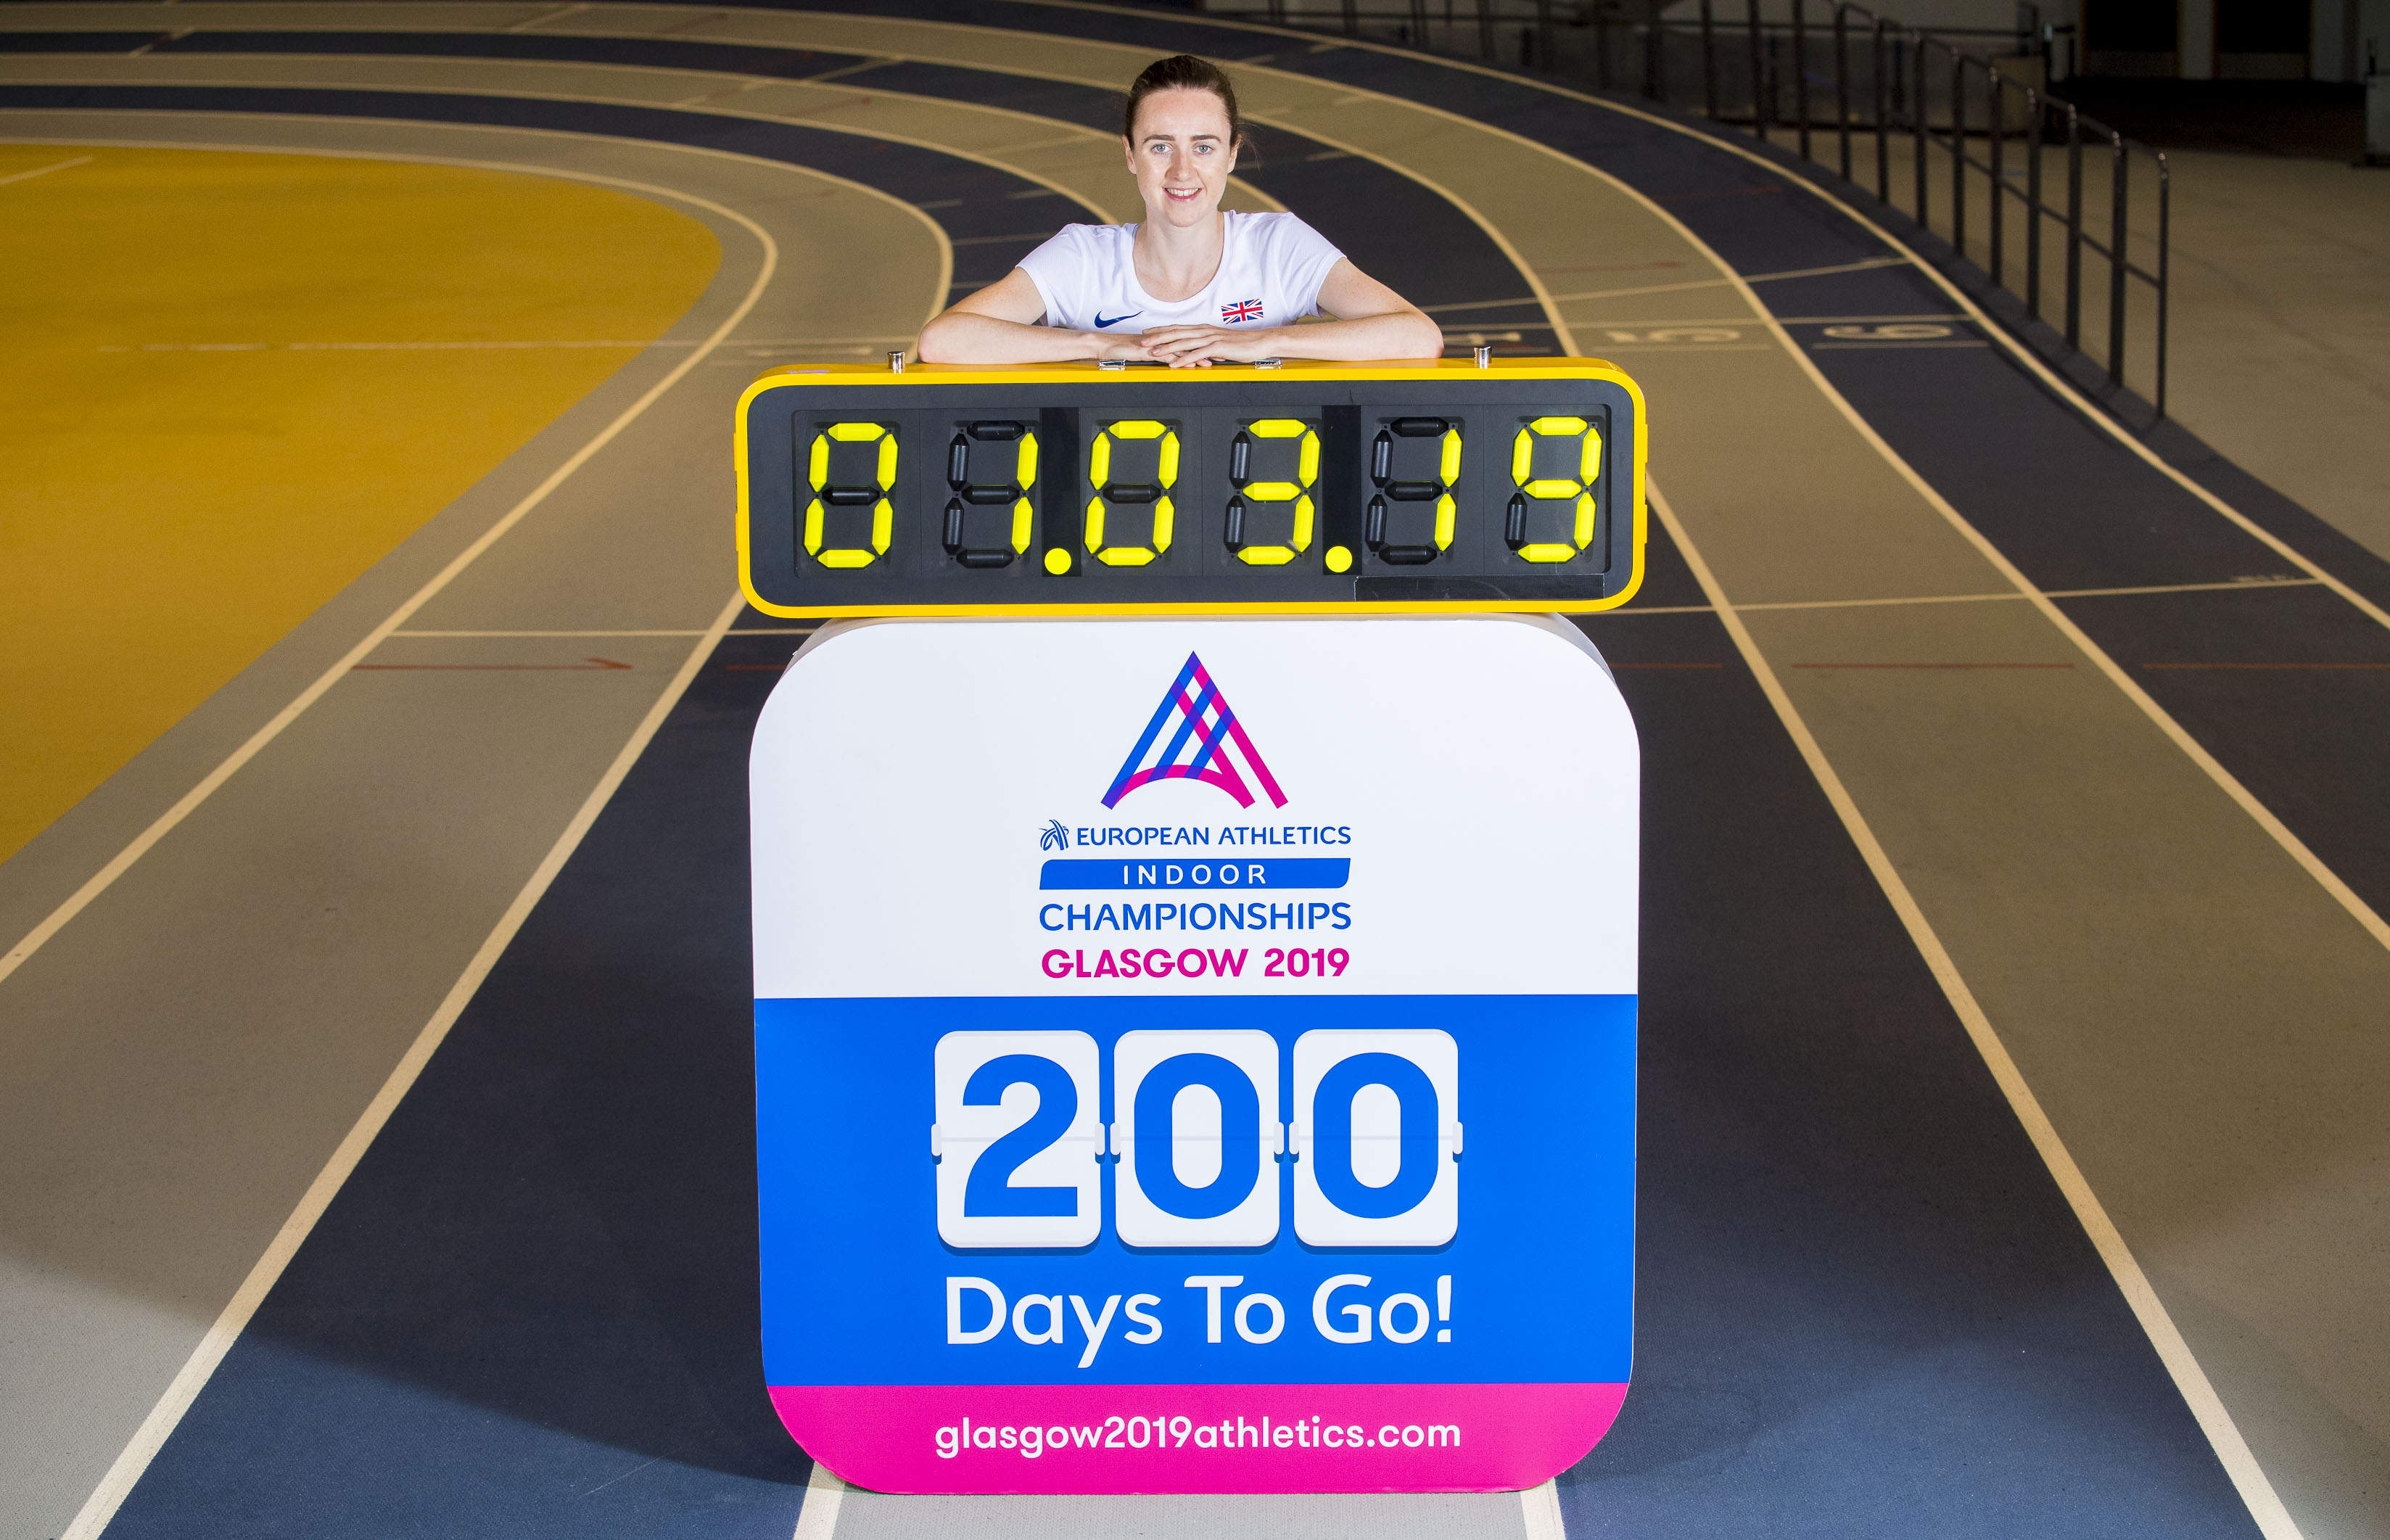 200 Days To Go: Full schedule for 2019 European Atletics Indoor Championships revealed